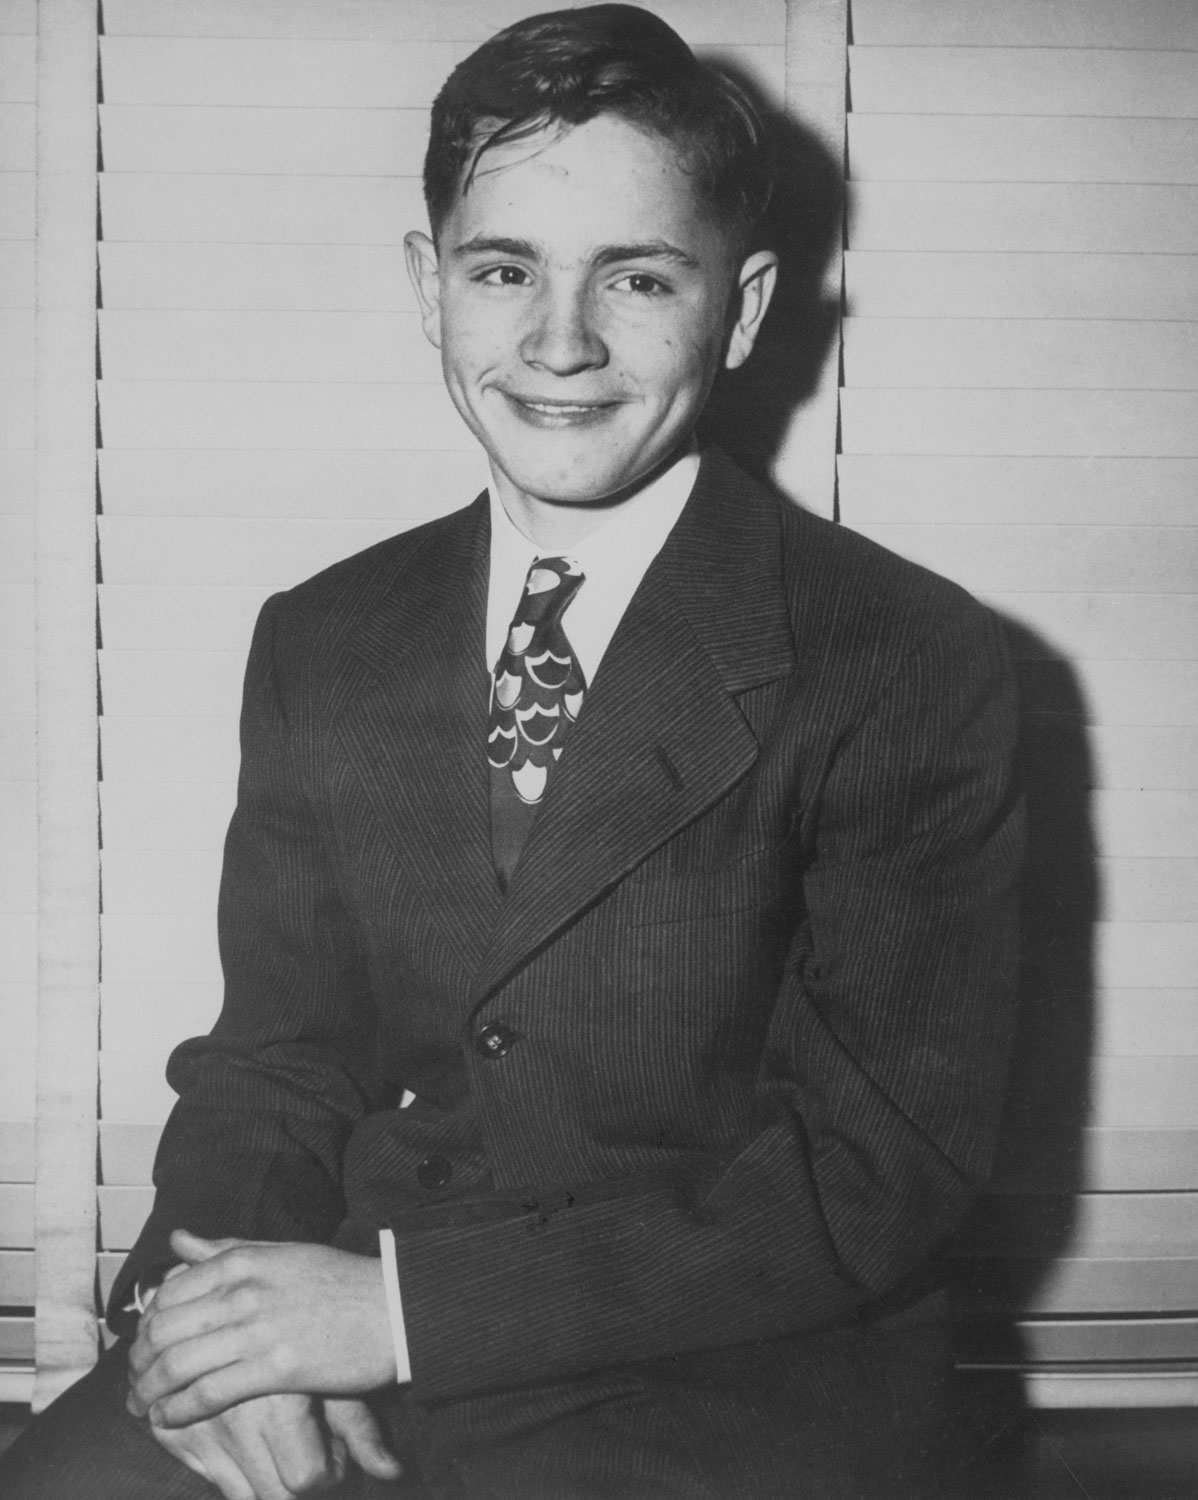 Charles Manson at age 13, three days before he ran away from Boy's Town in Omaha in 1947.